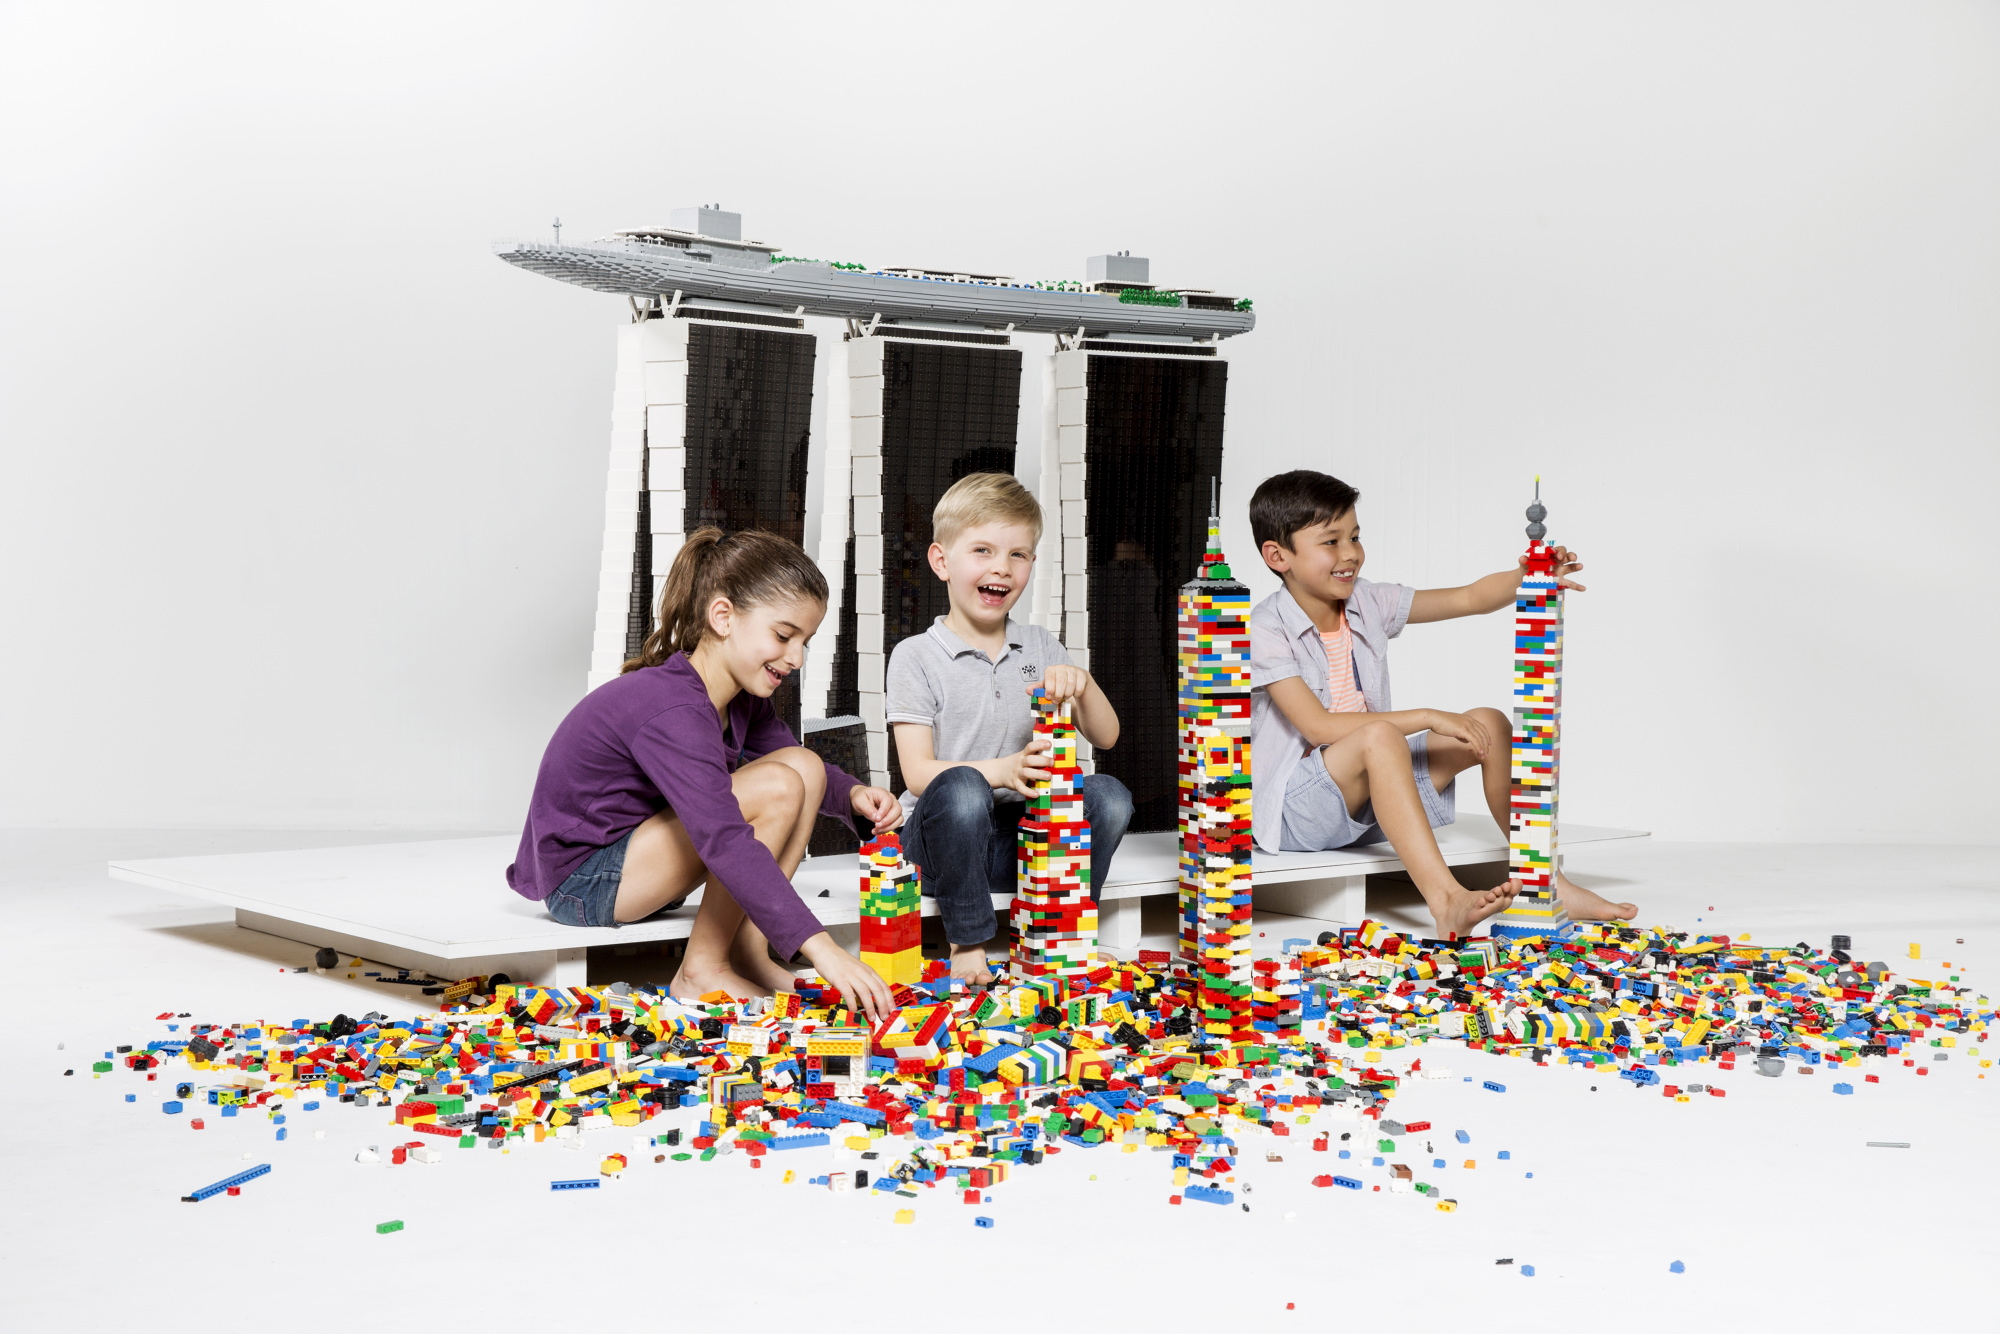 Kids playing with LEGO in front of a large scale LEGO Marina Bay     Lego